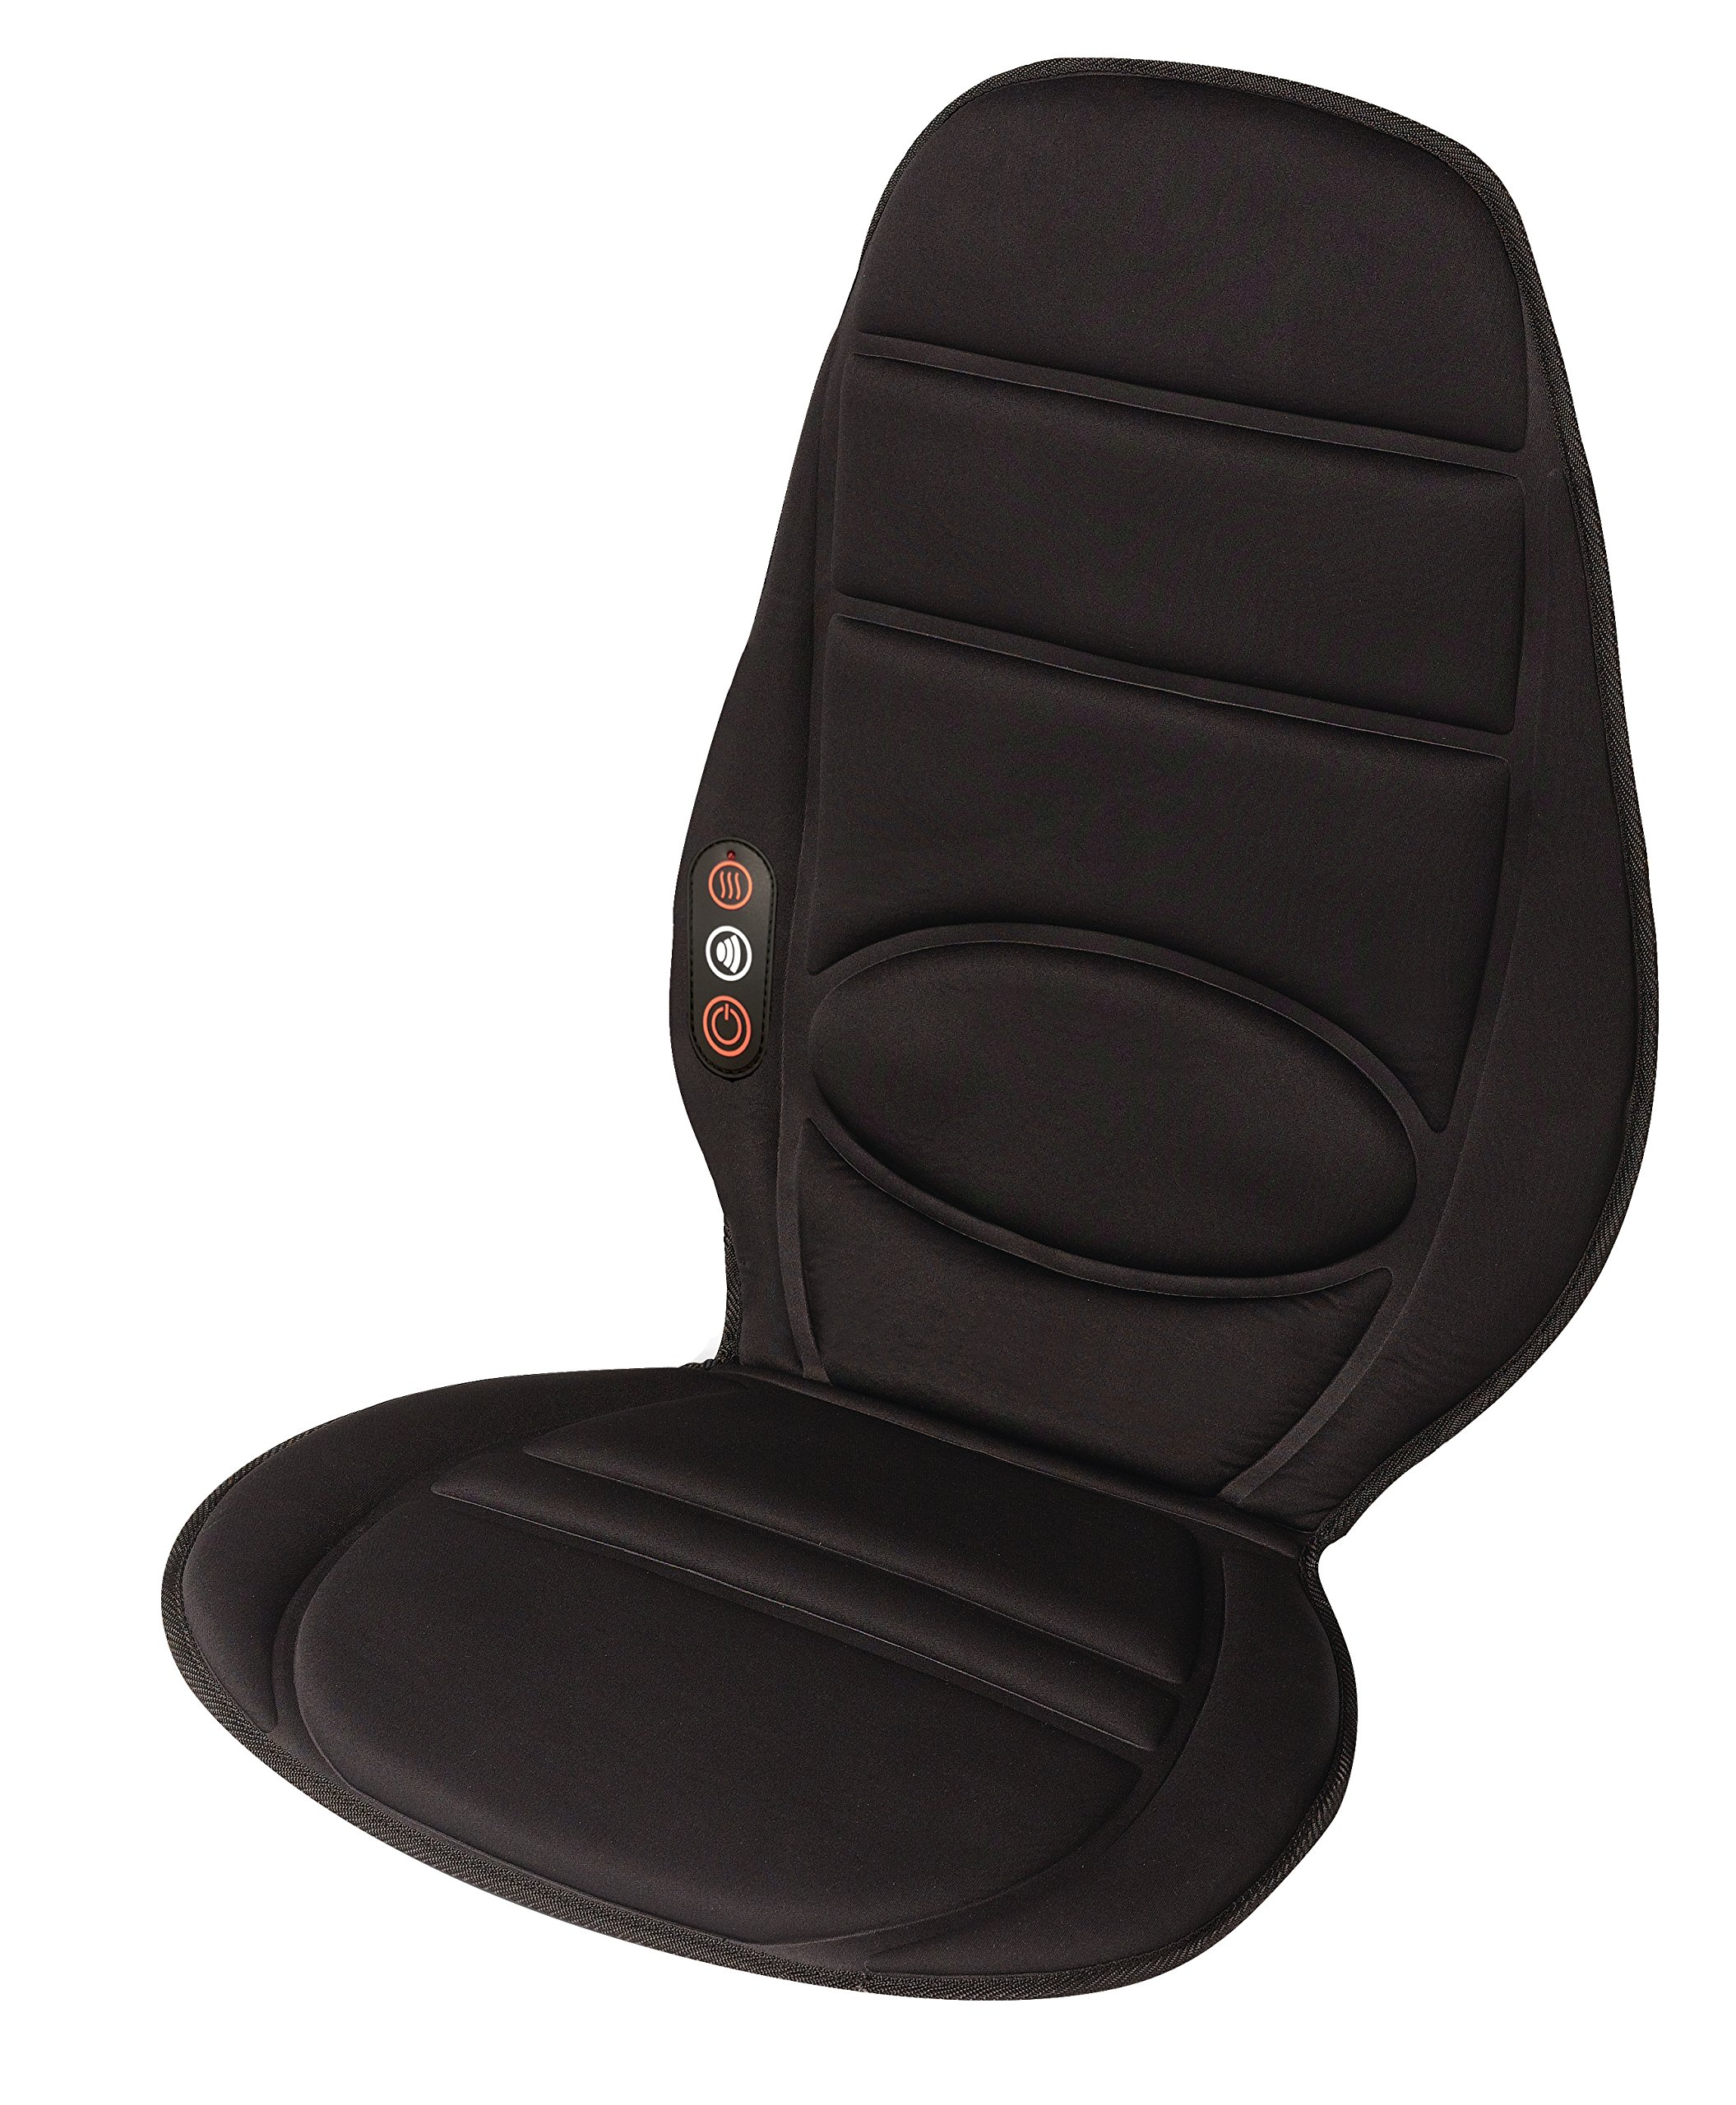 Vibrating Neck and Full Back Massage Seat Cushion Body Chair with